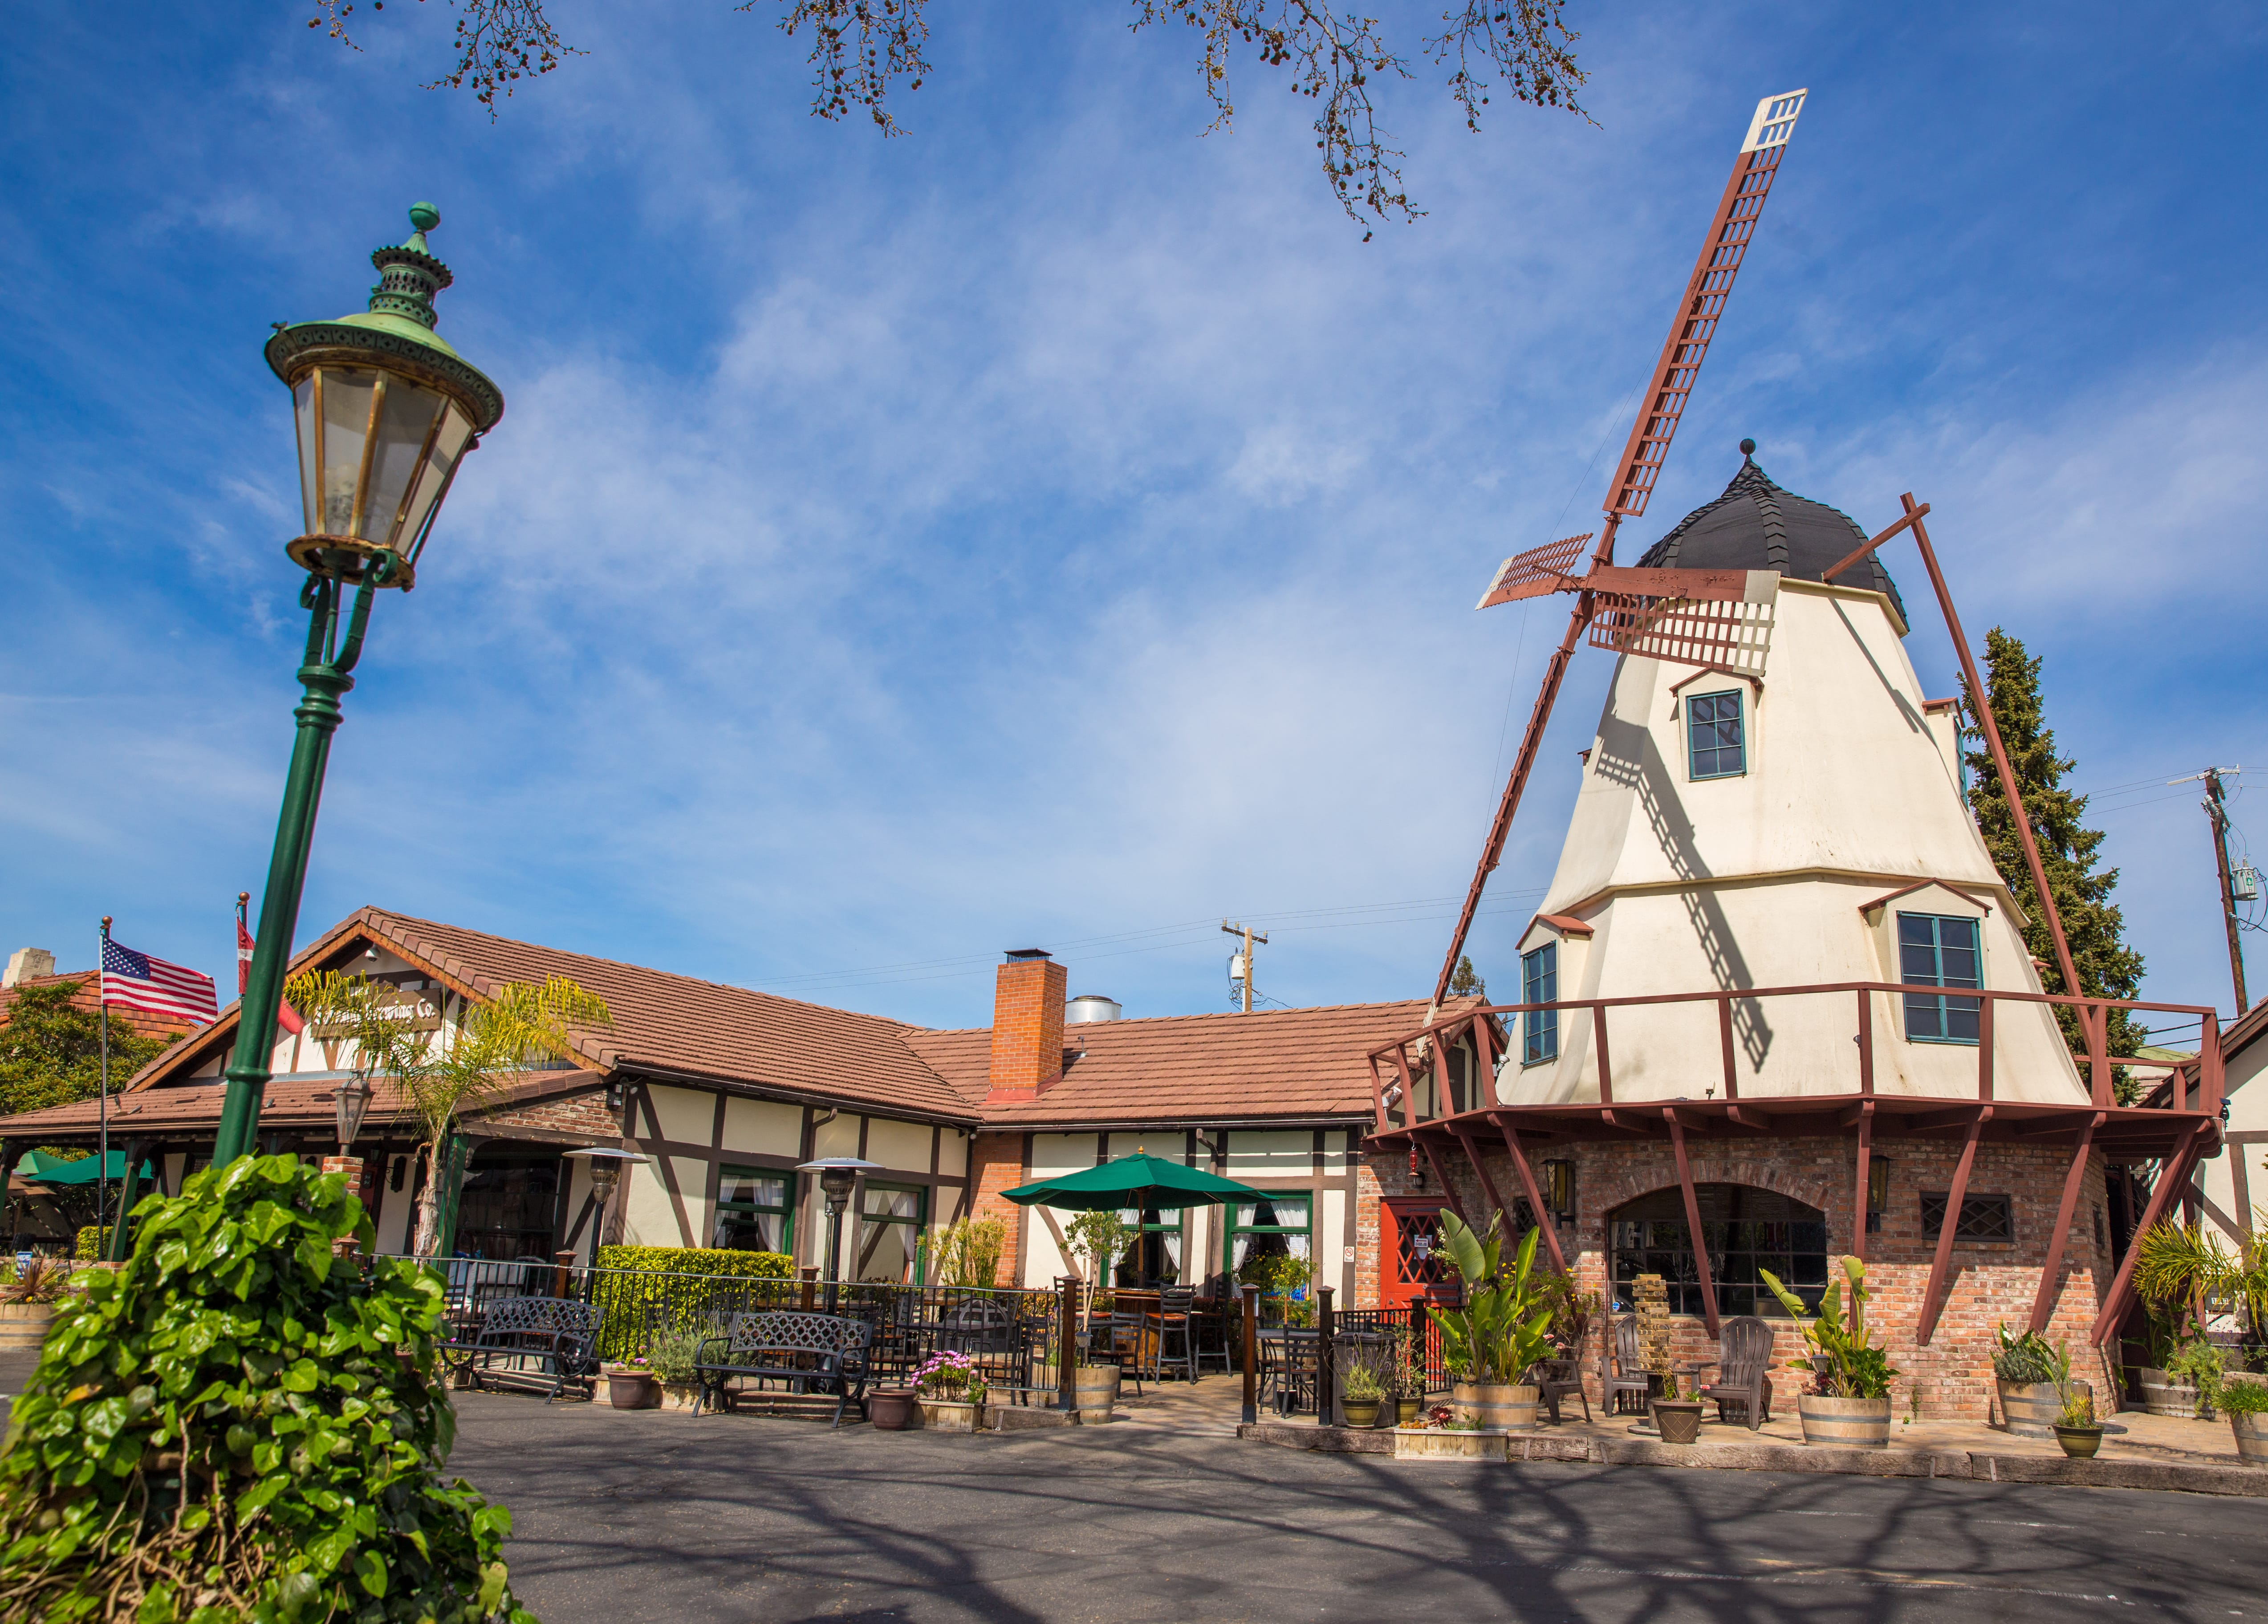 Located in Santa Barbara County and nestled in Santa Ynez Valley, you'll find a quaint city that resembles a European village